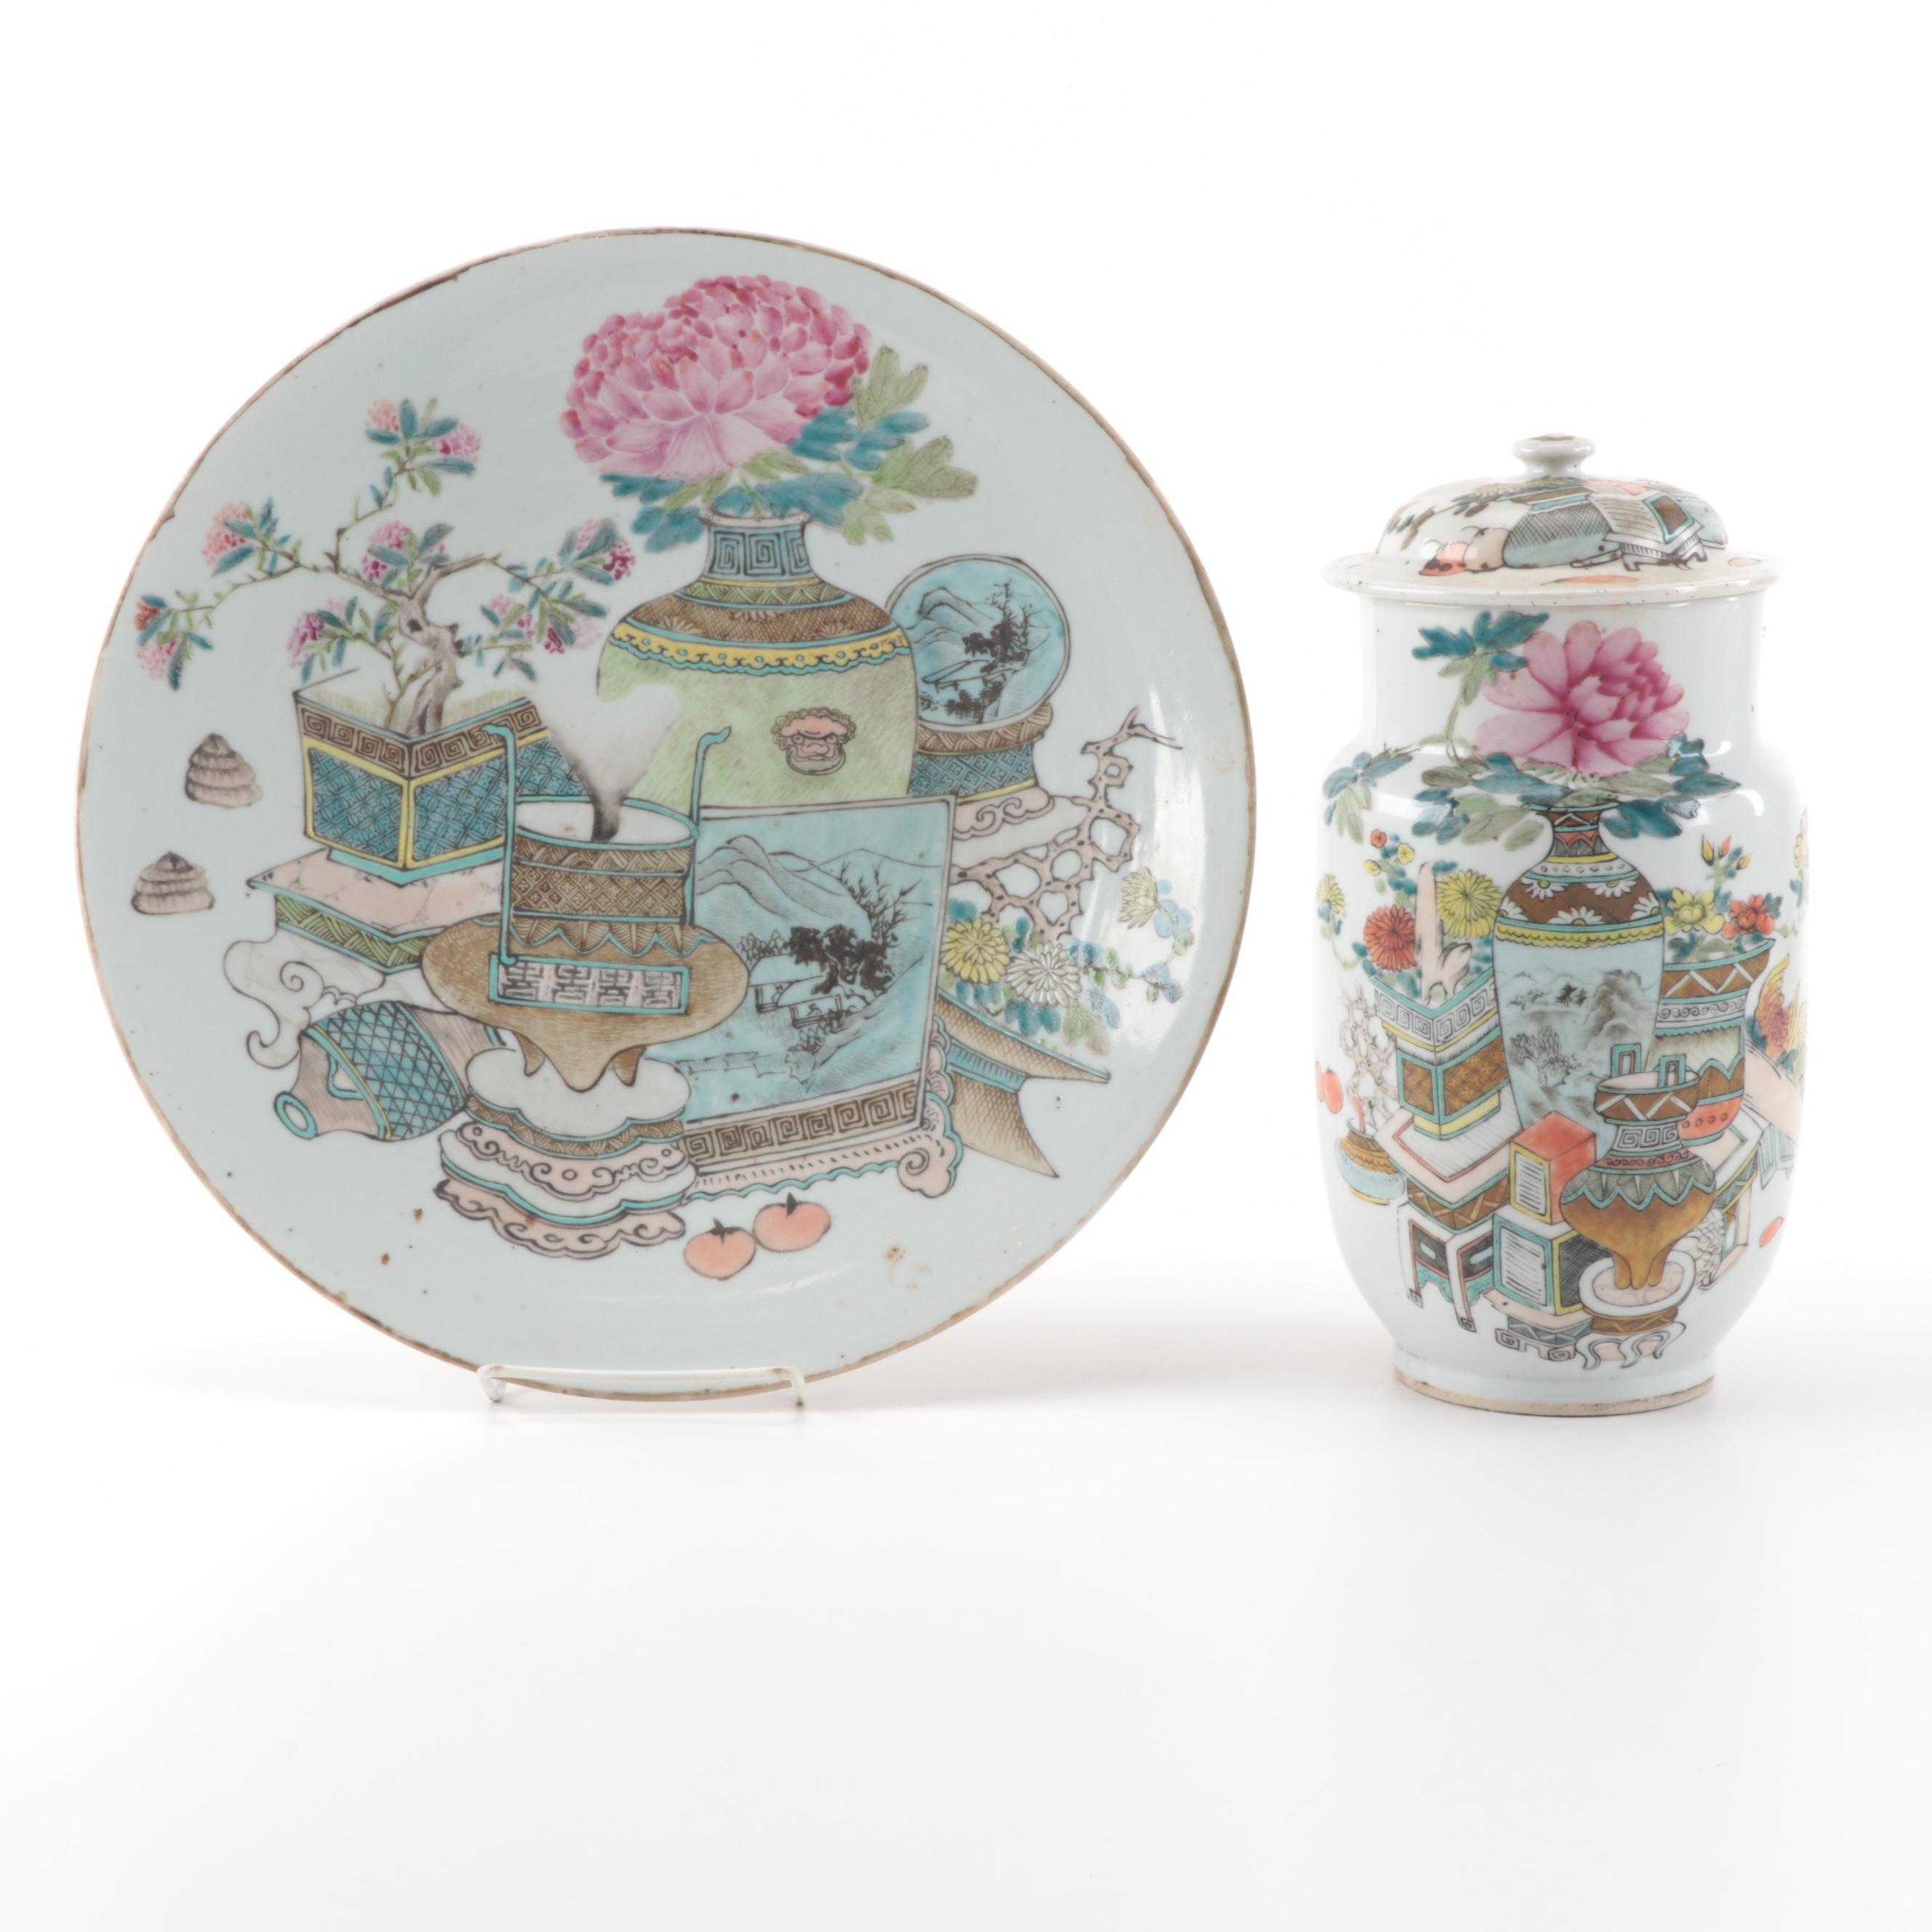 Hand-Painted Chinese Porcelain Ginger Jar and Decorative Plate